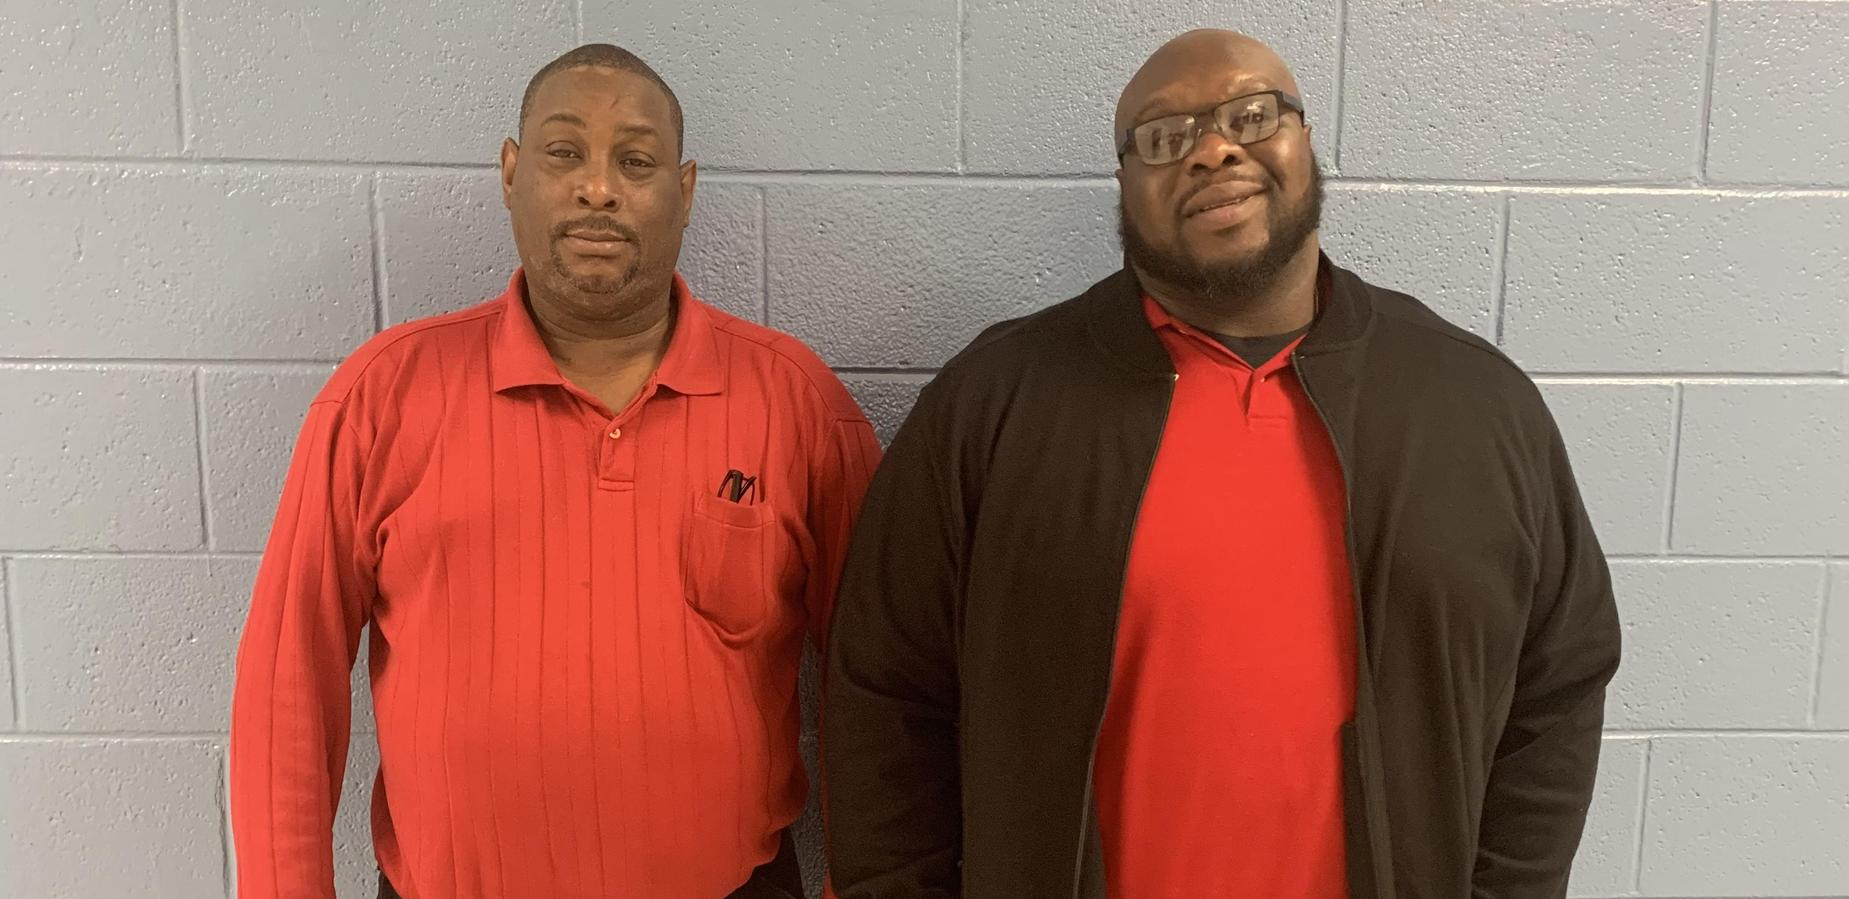 Mr. Bobian and Mr. Carter wearing red for holiday week